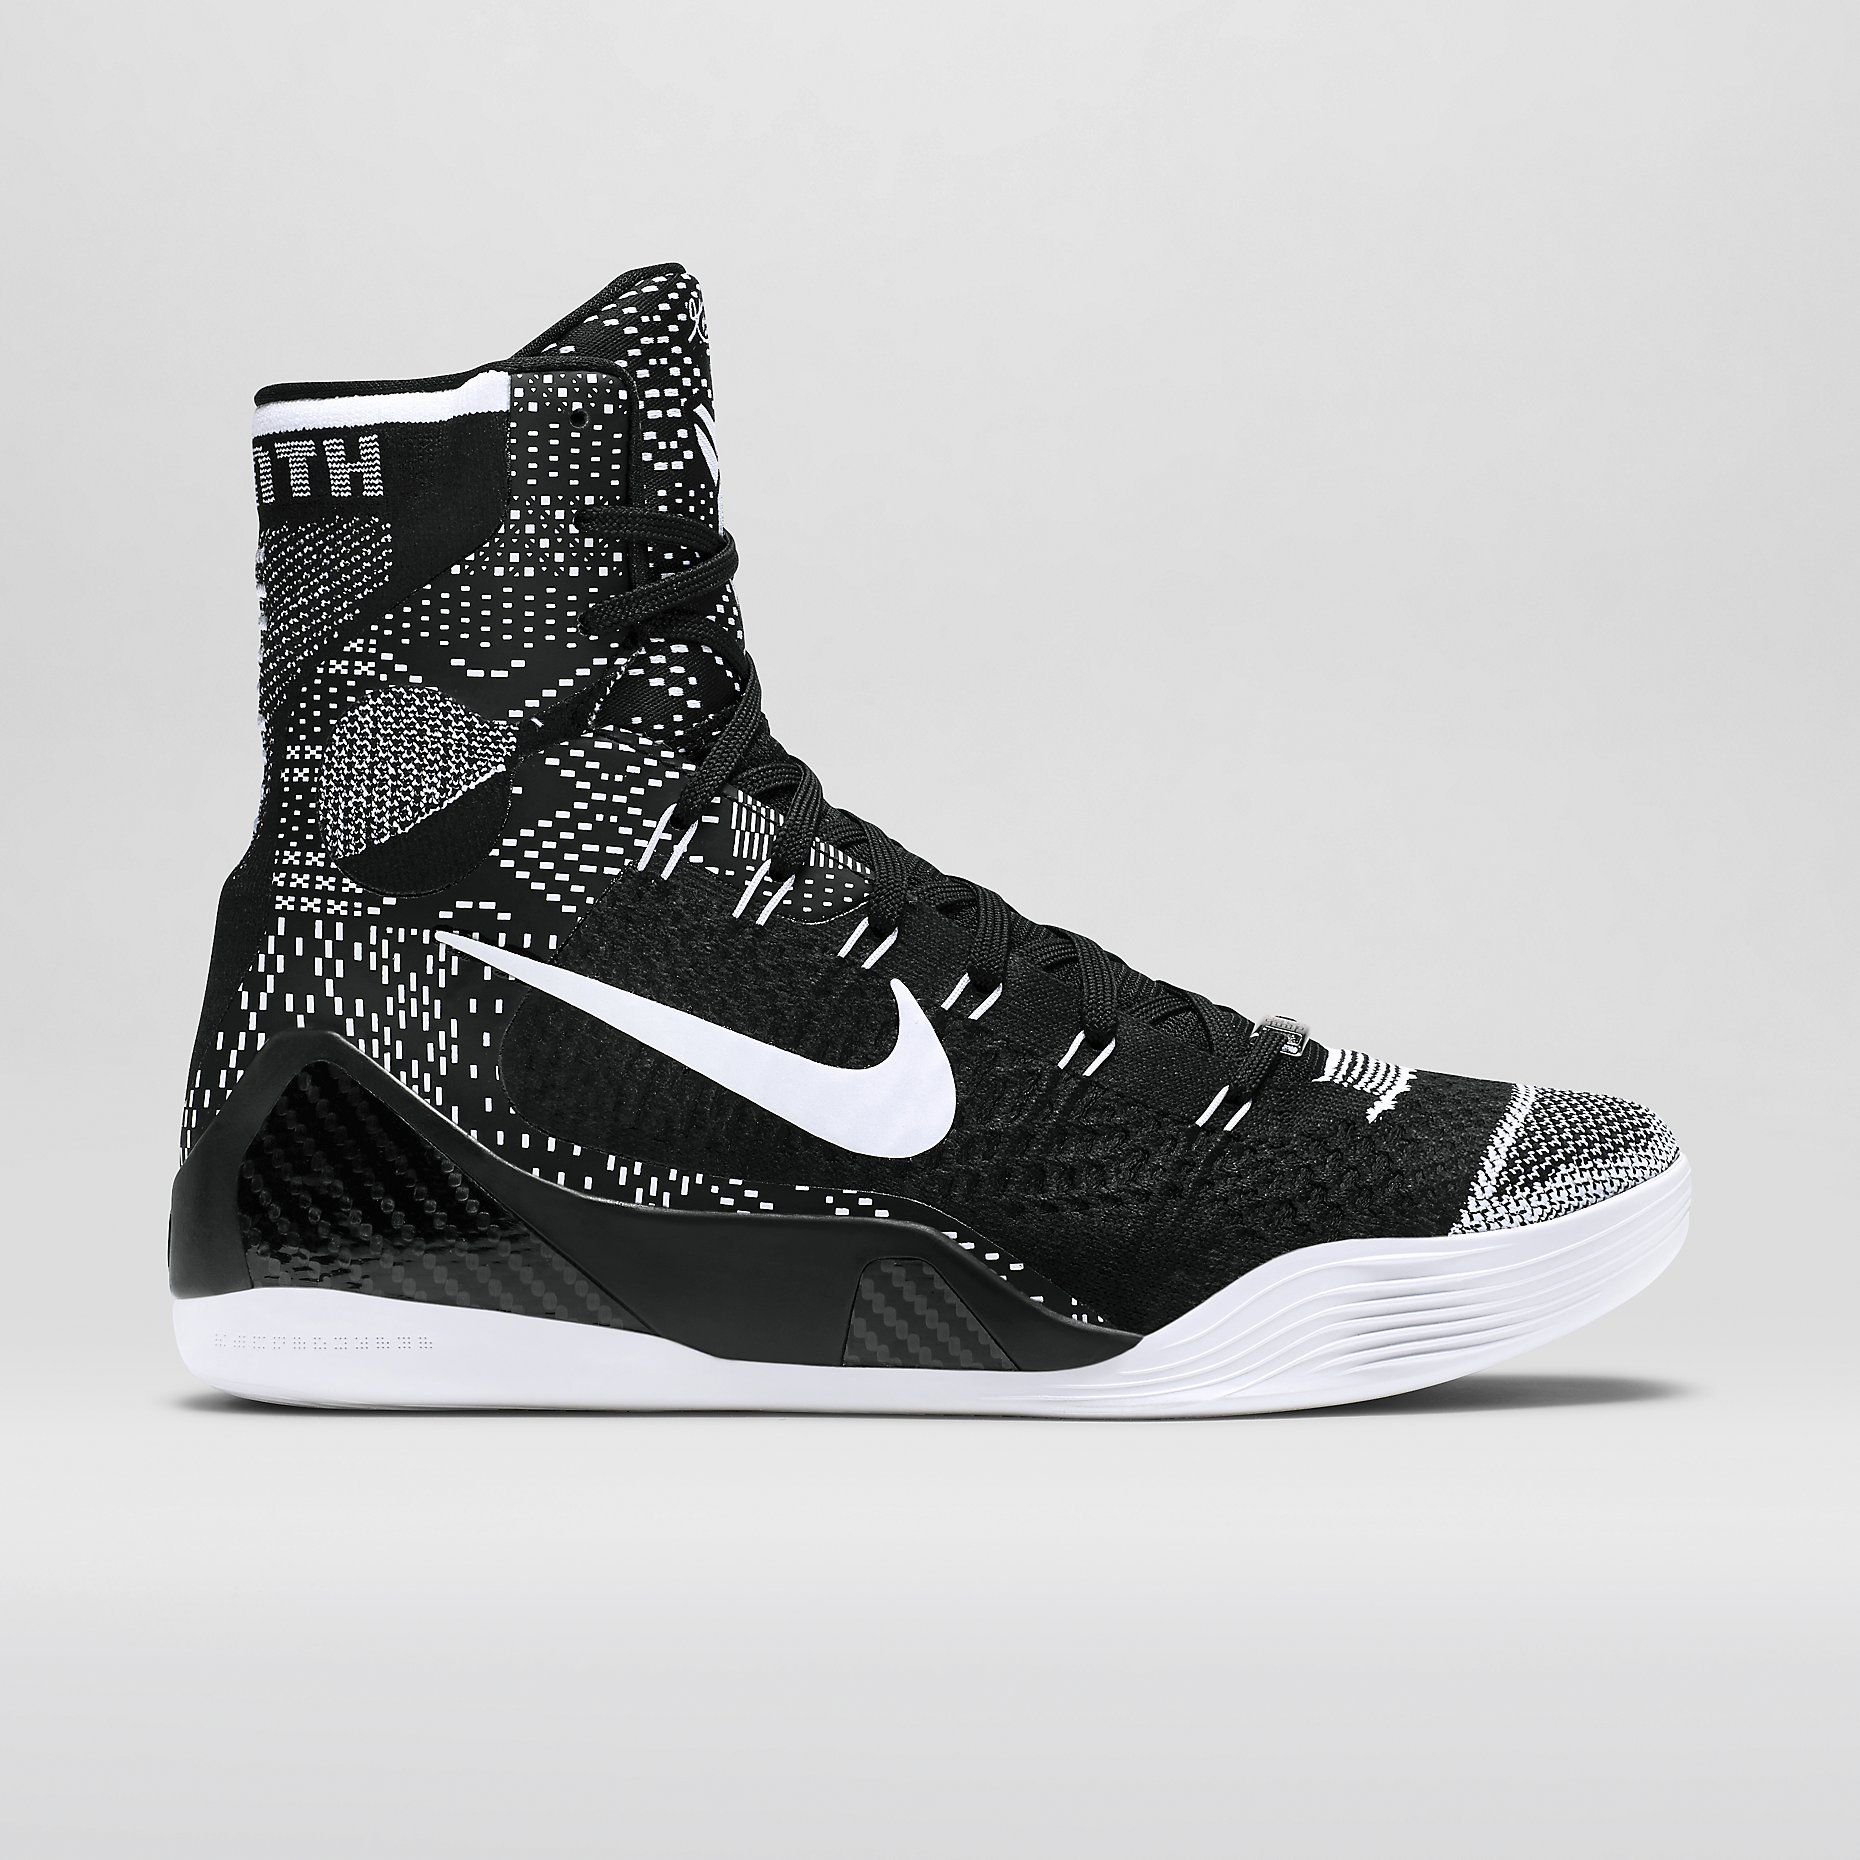 size 40 1039b e8009 Kobe 9 Elite BHM Men s Basketball Shoe. Nike Store